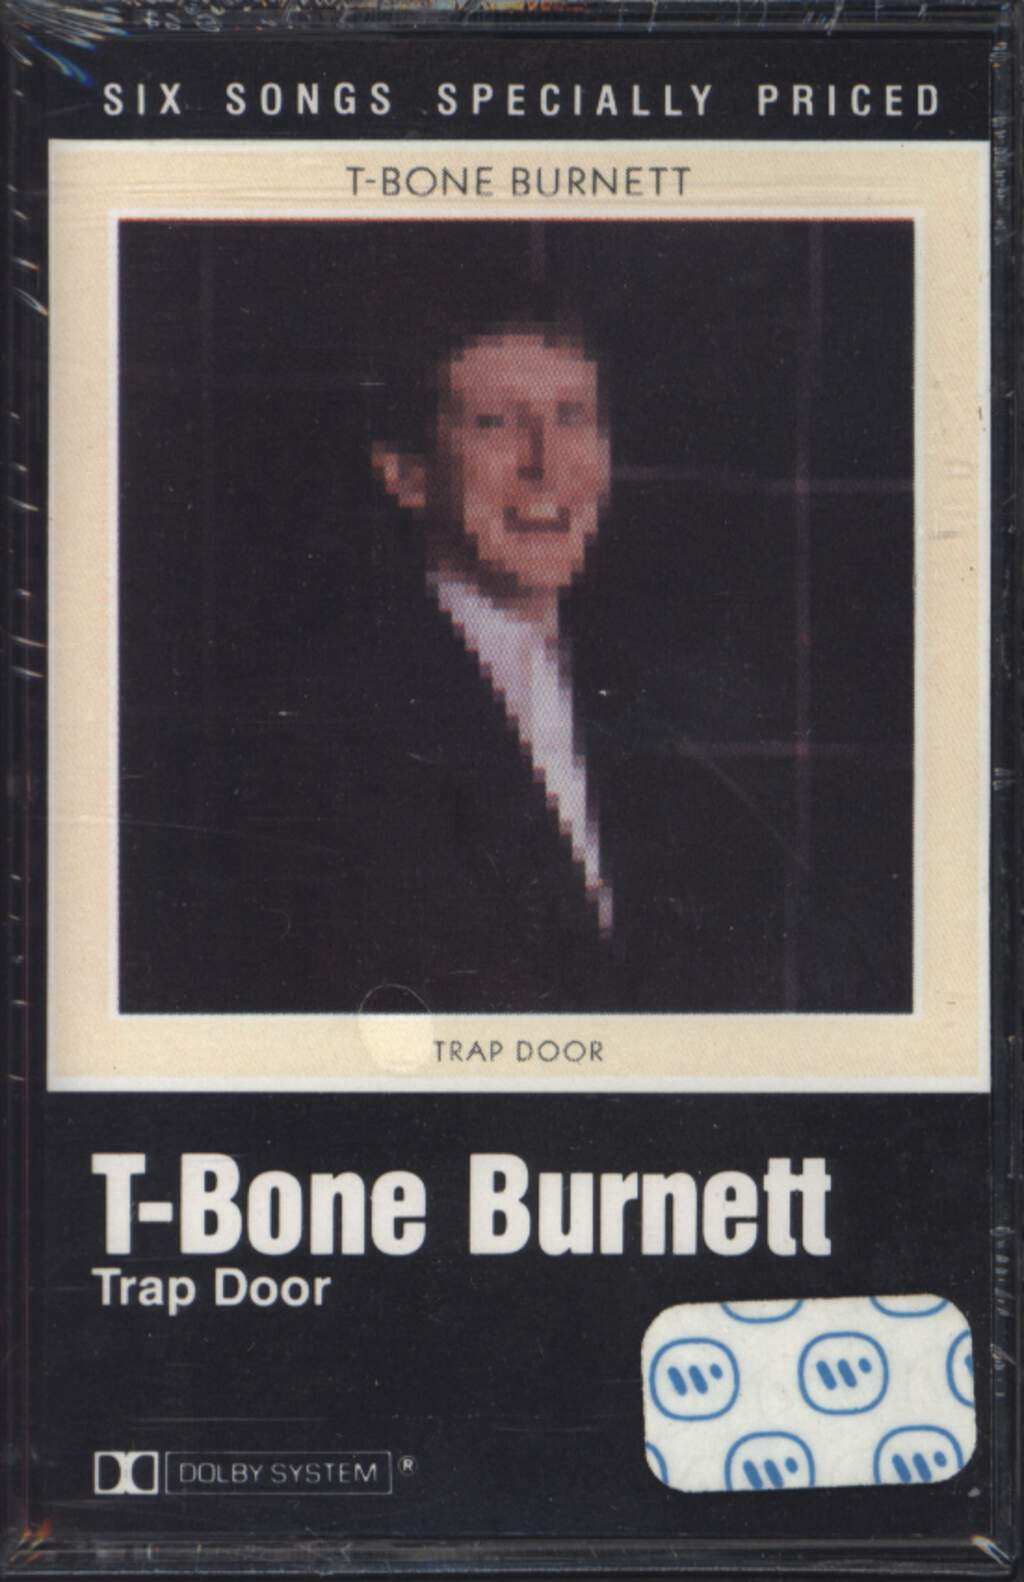 T-Bone Burnett: Trap Door, Compact Cassette